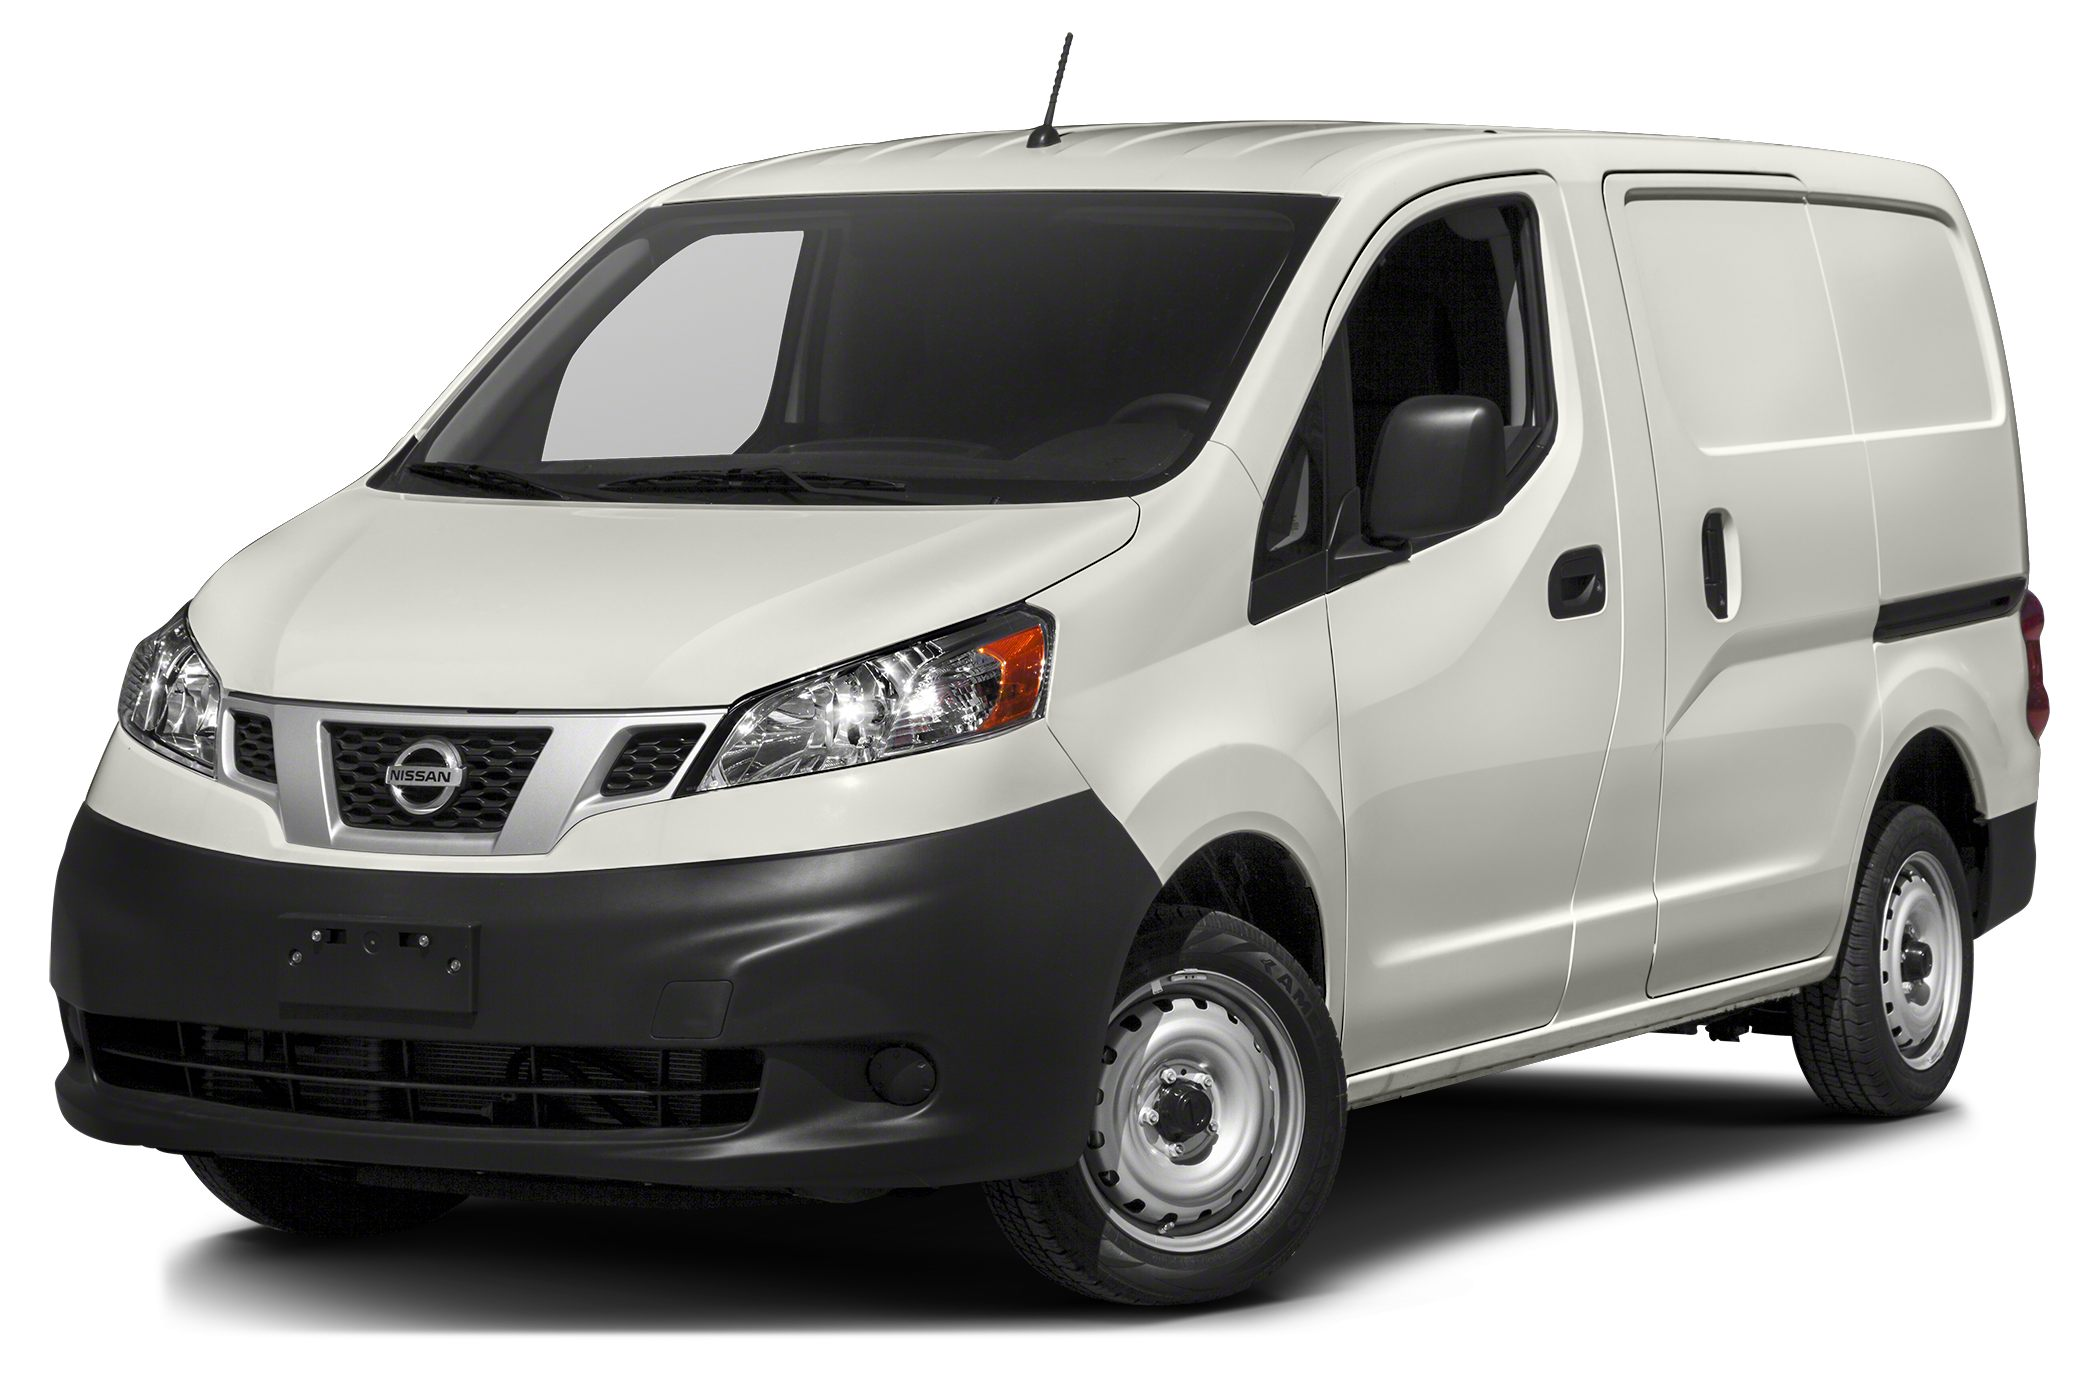 2017 Nissan NV200 S This Nissan wont be on the lot long Both practical and stylish Top features